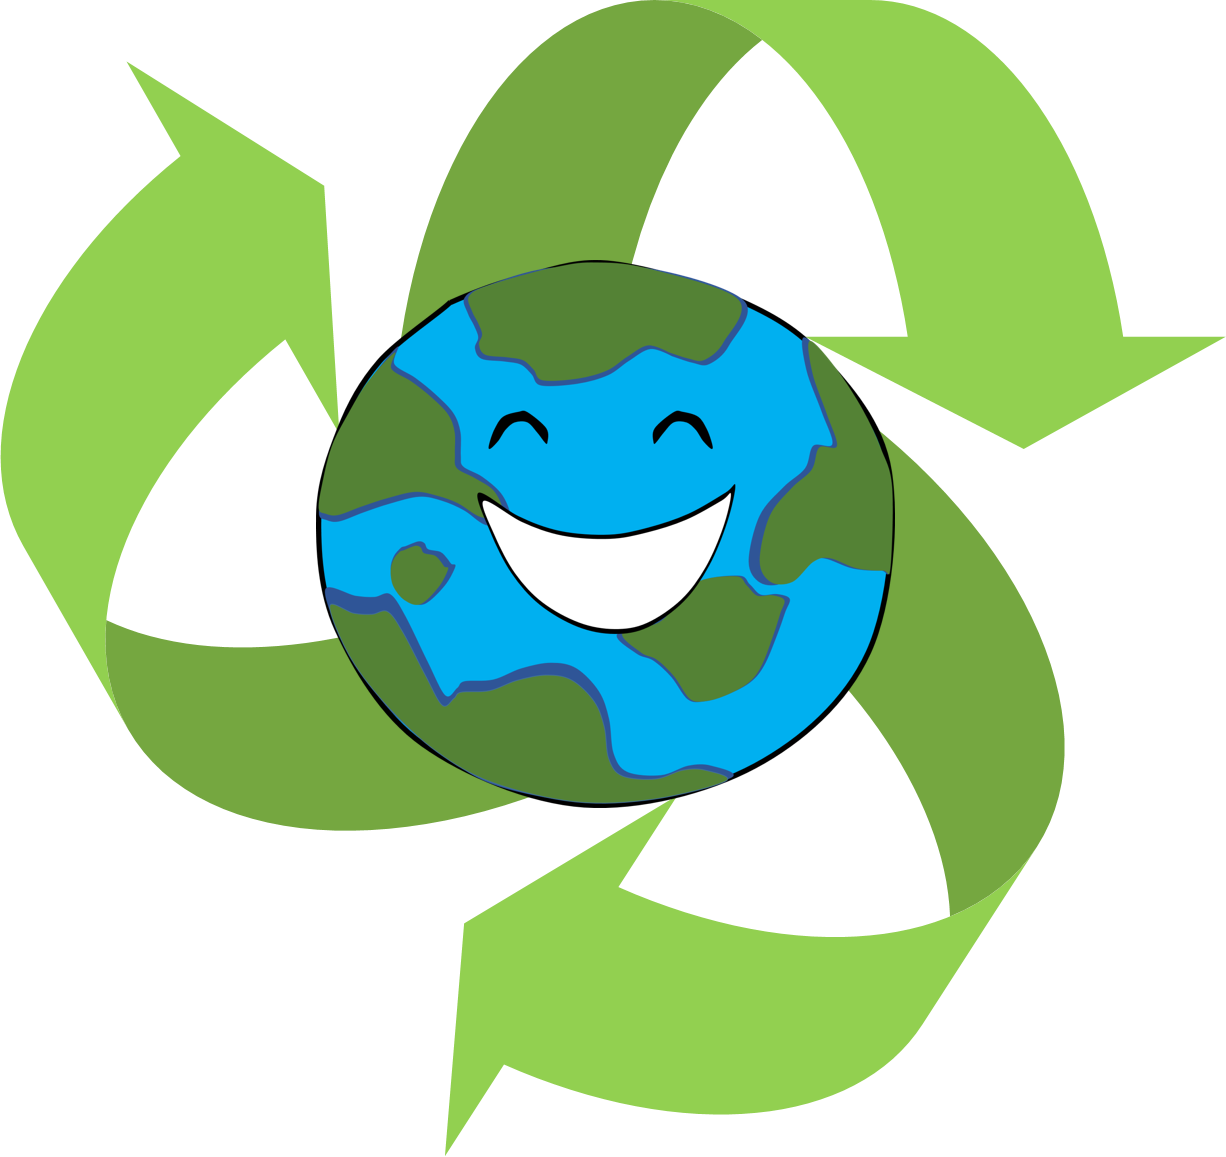 Reduce reuse recycle clipart club